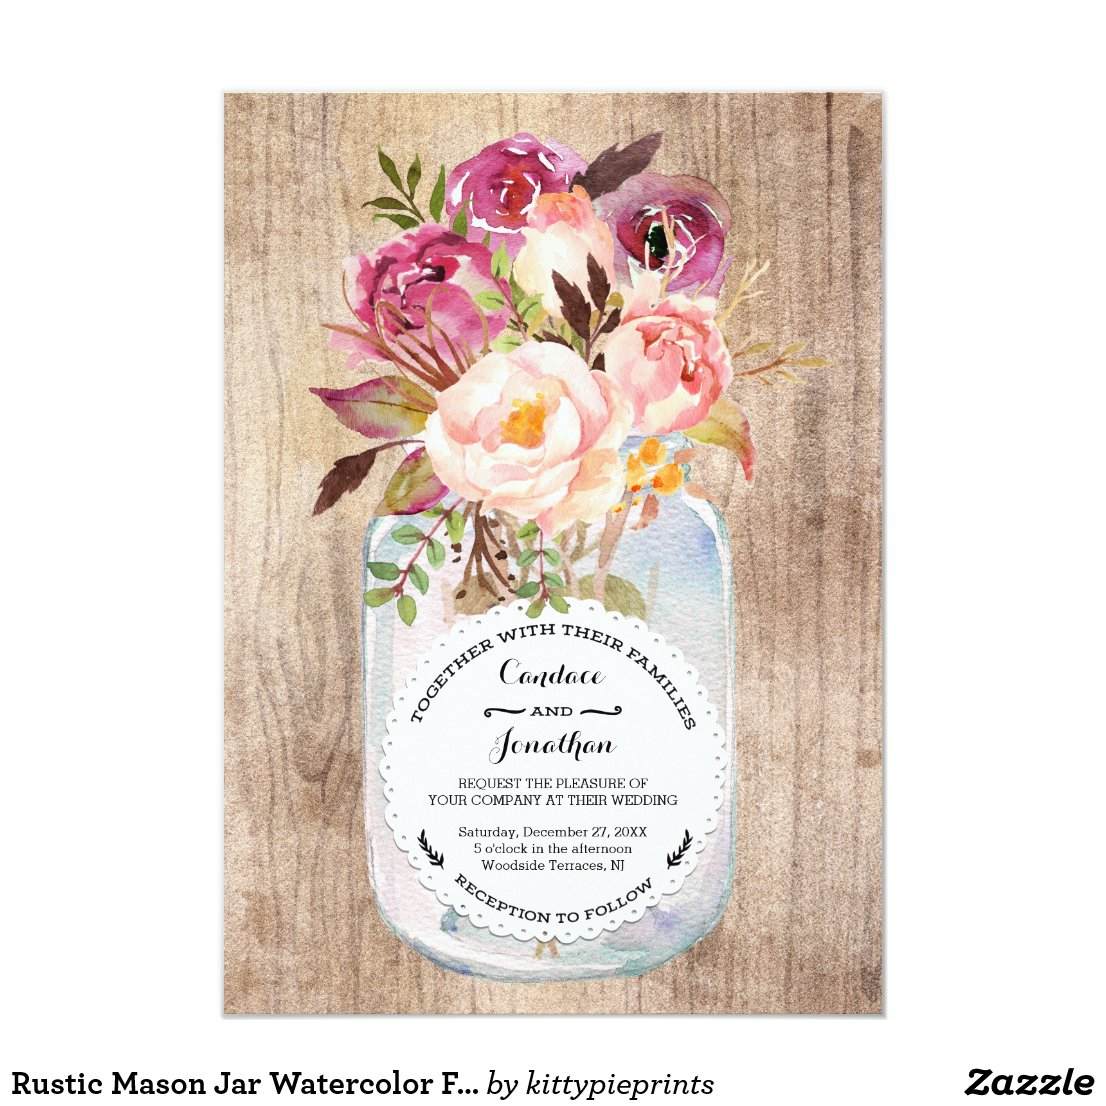 Rustic Mason Jar Watercolor Flowers Wood Wedding Card